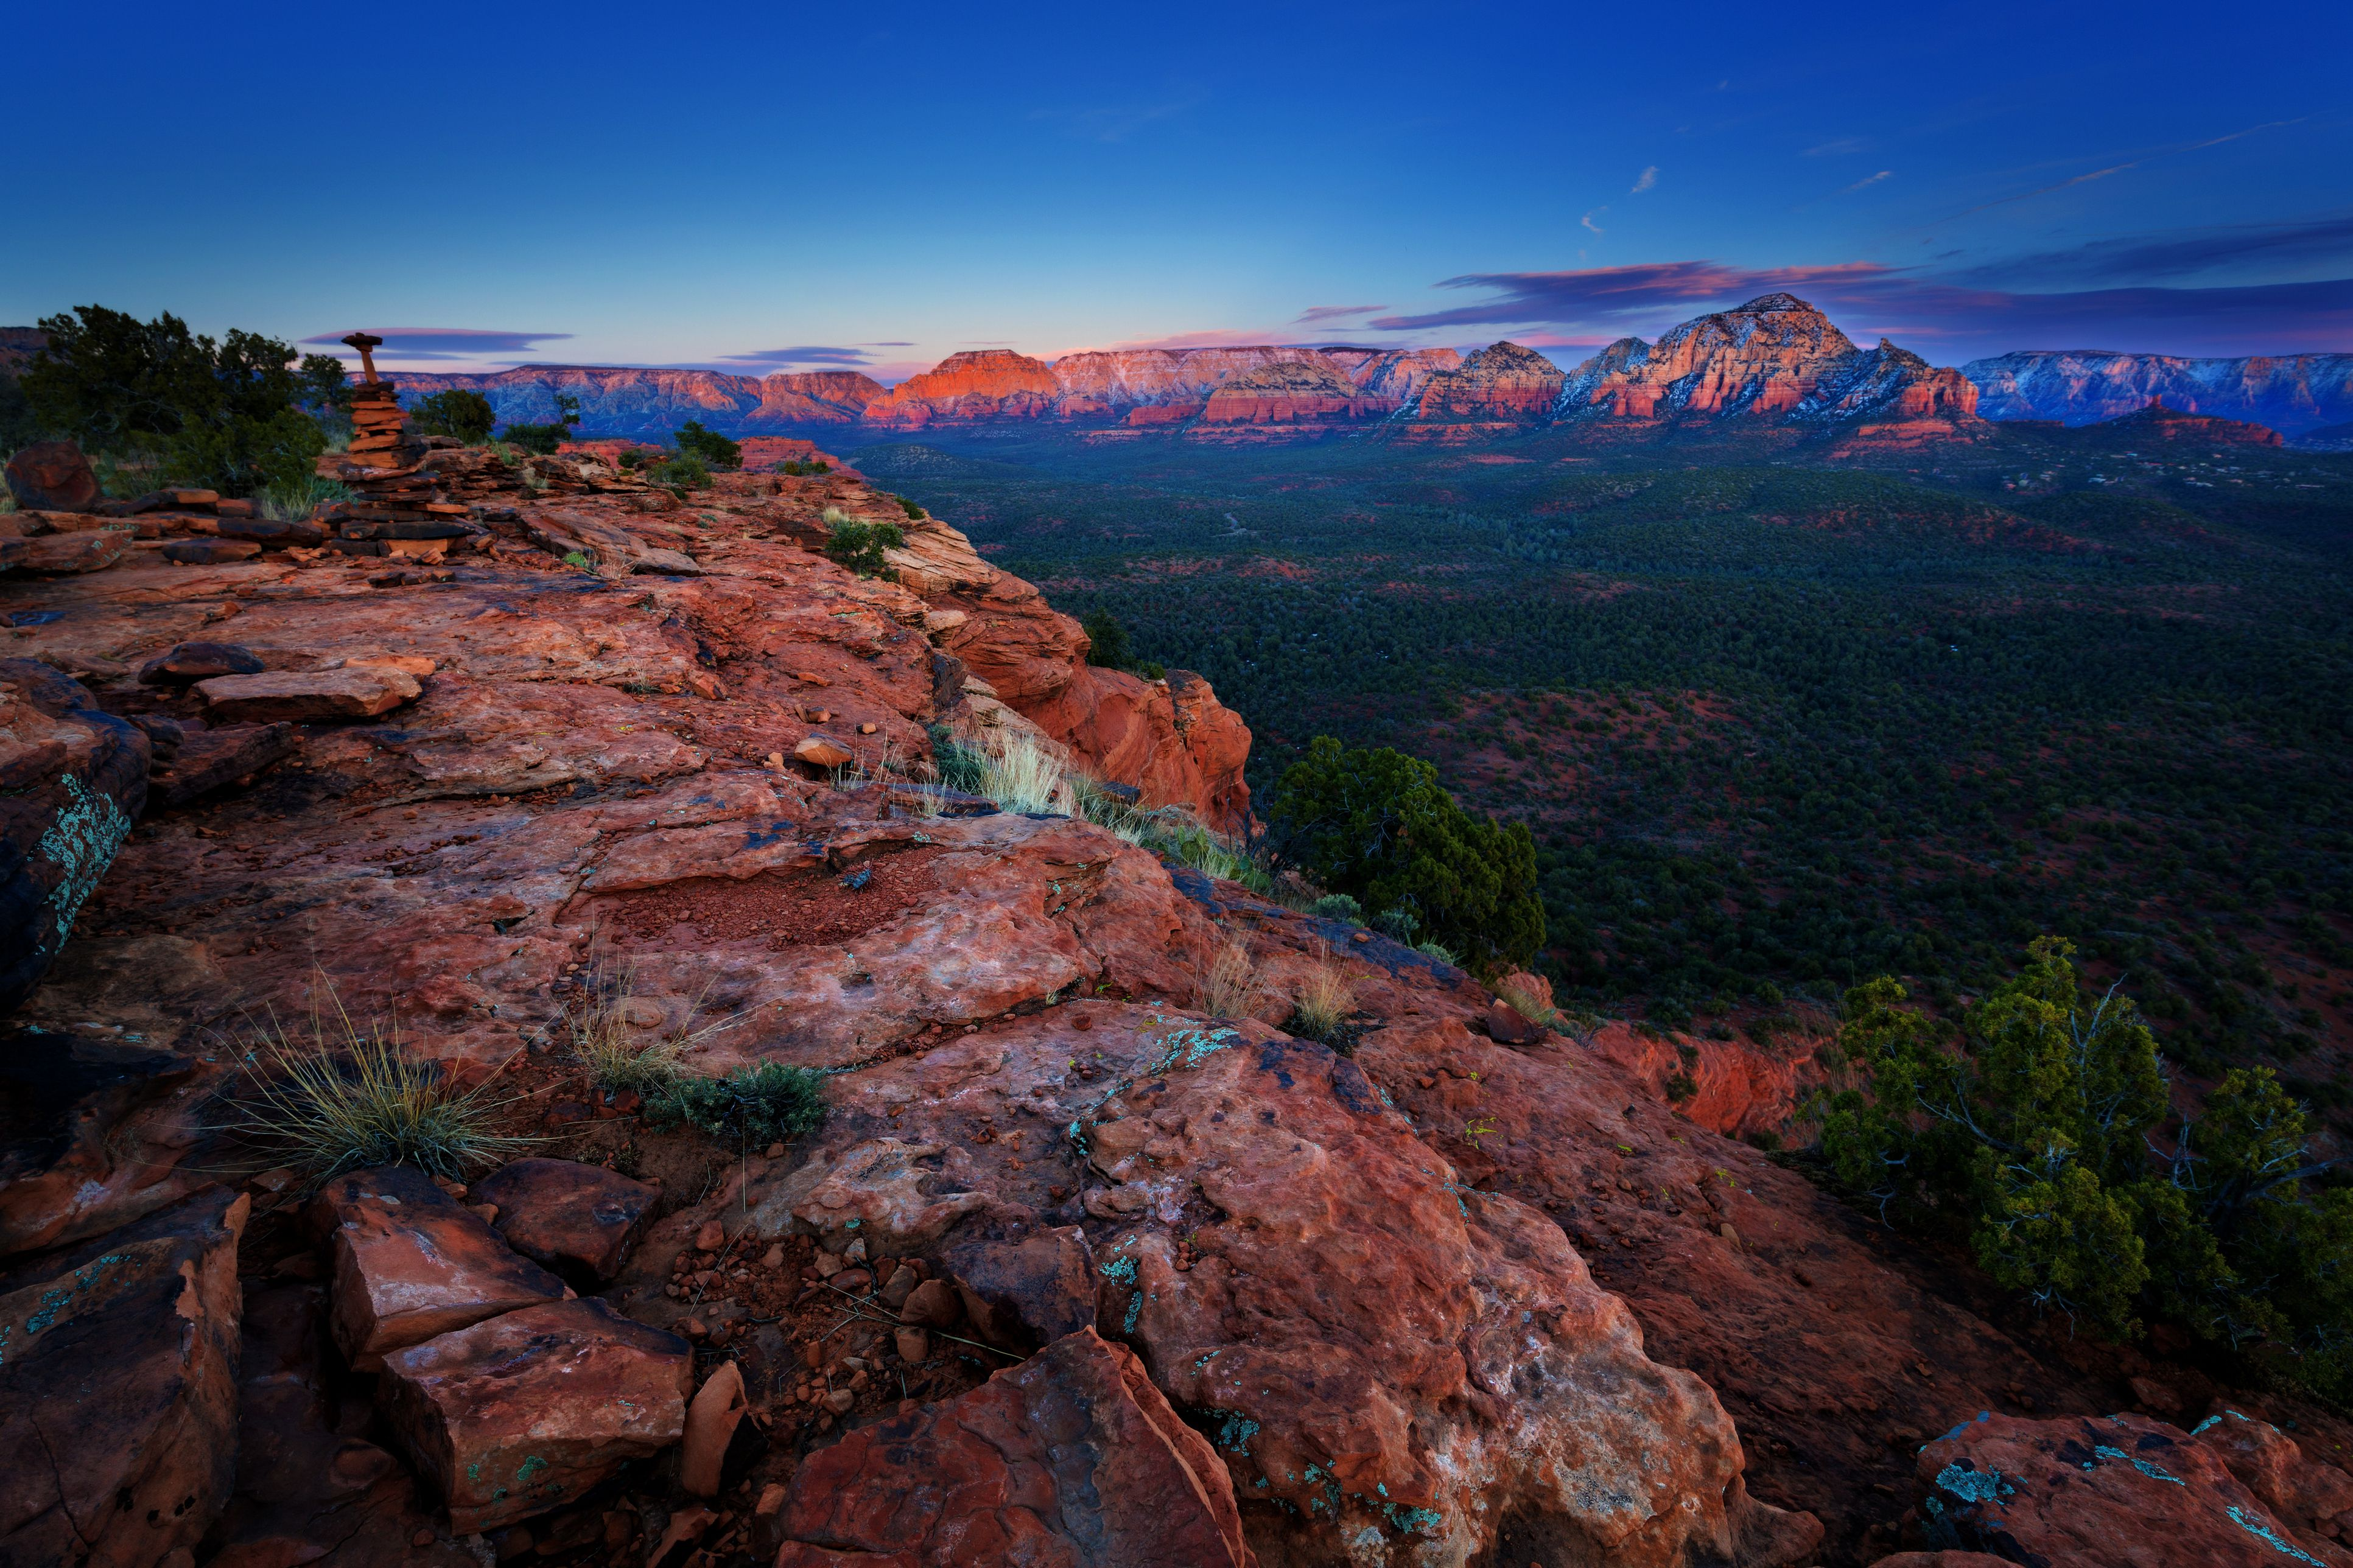 Dusk over Sedona Arizona rock formations dusted with snow viewed from summit of Doe Mountain in winter